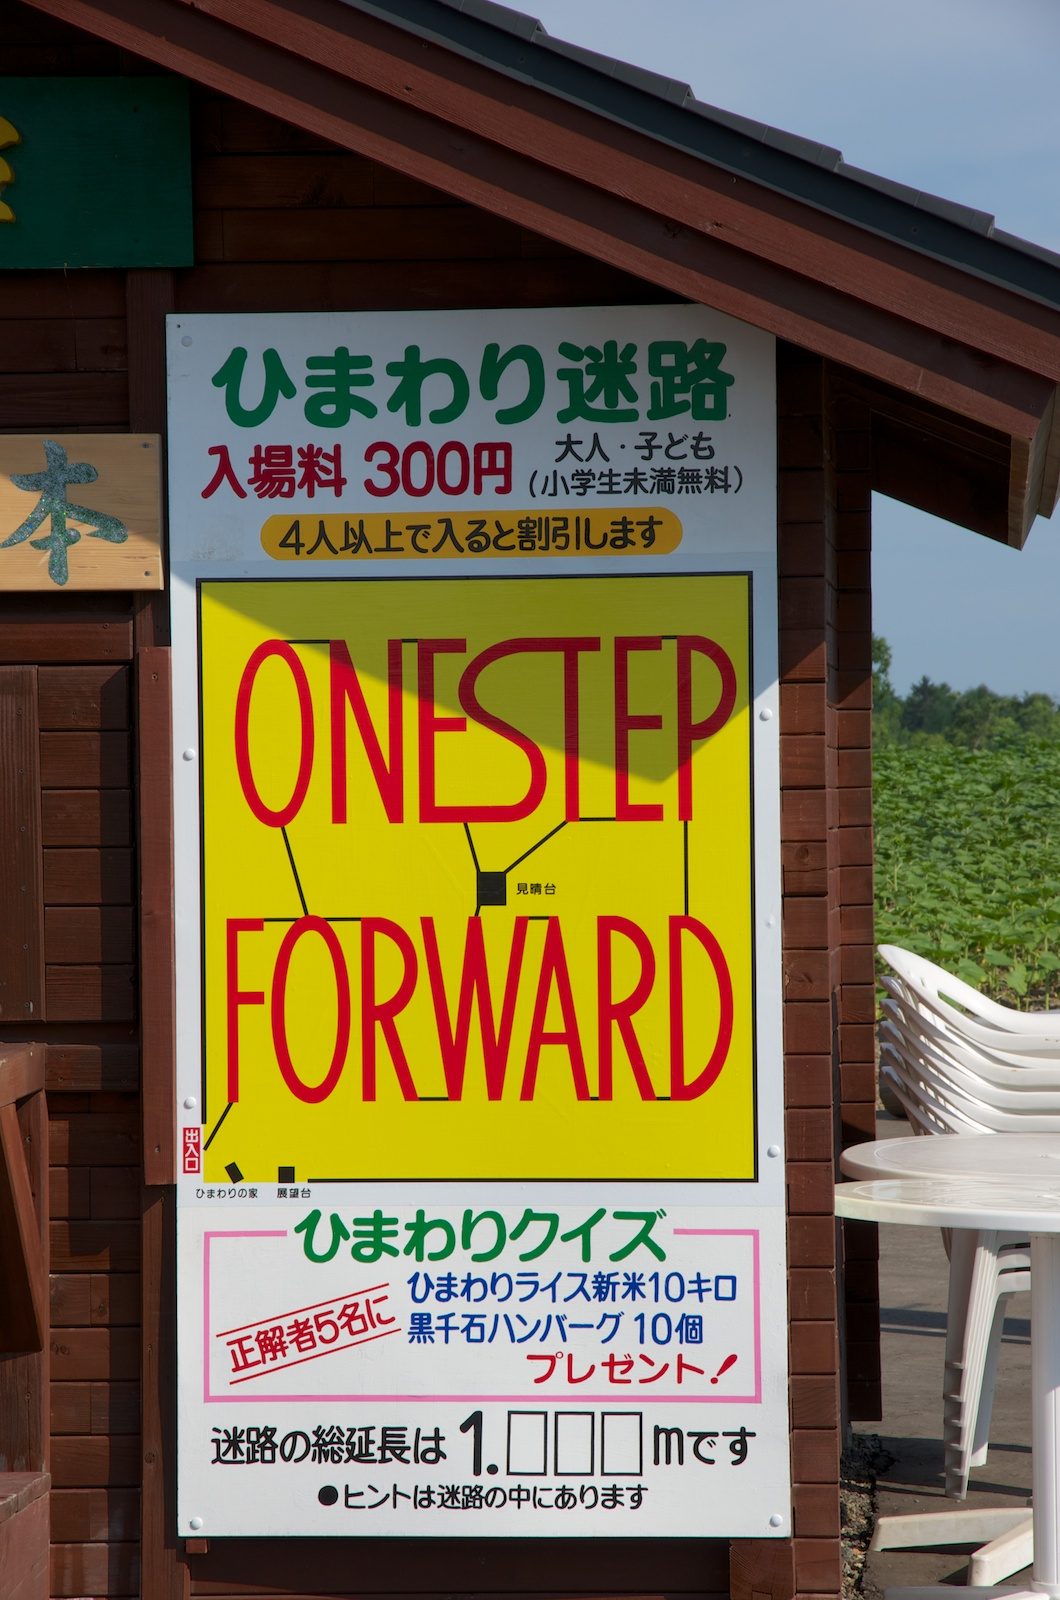 Photo: ひまわり迷路「ONE STEP FORWARD」